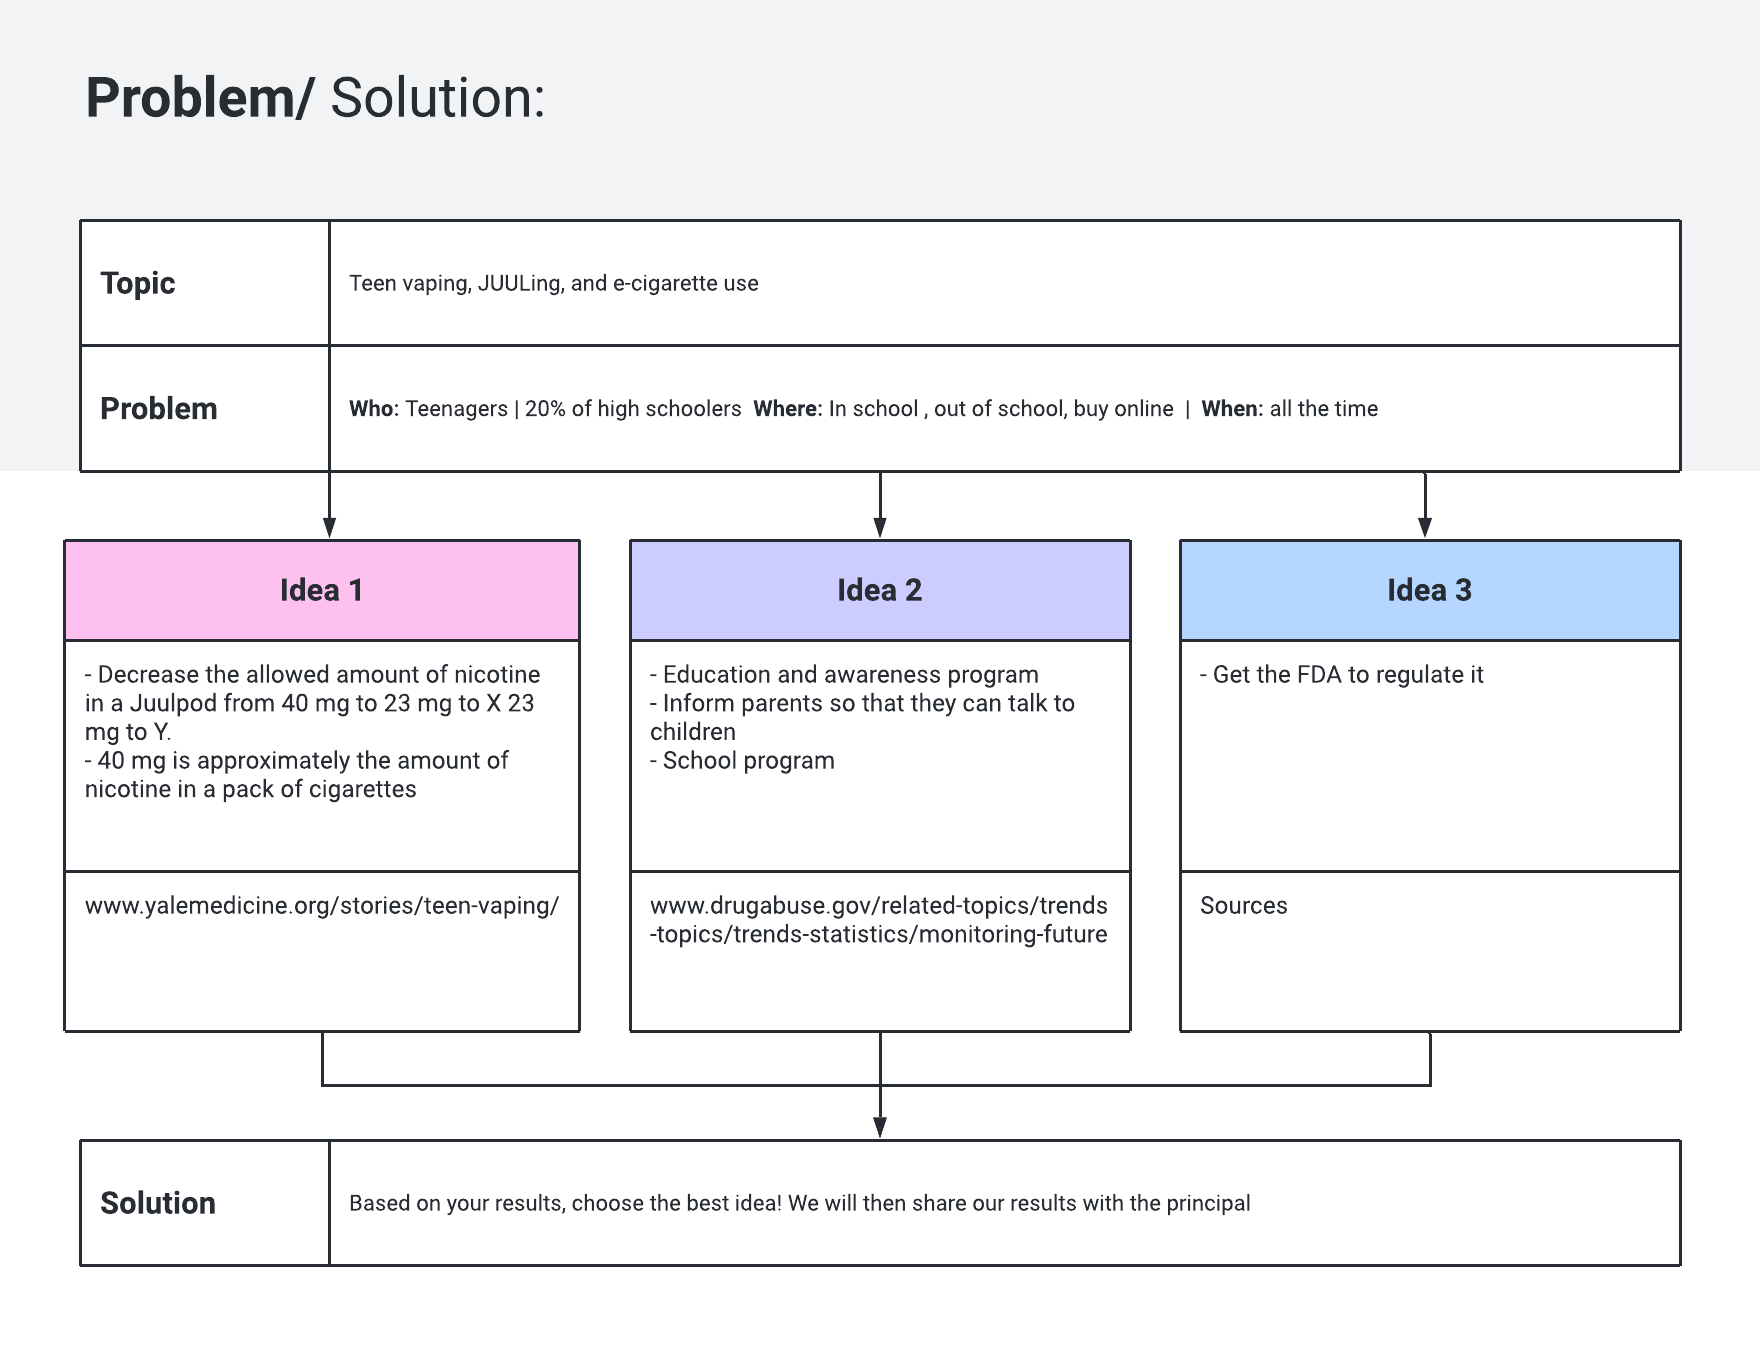 problem followed by a solution table